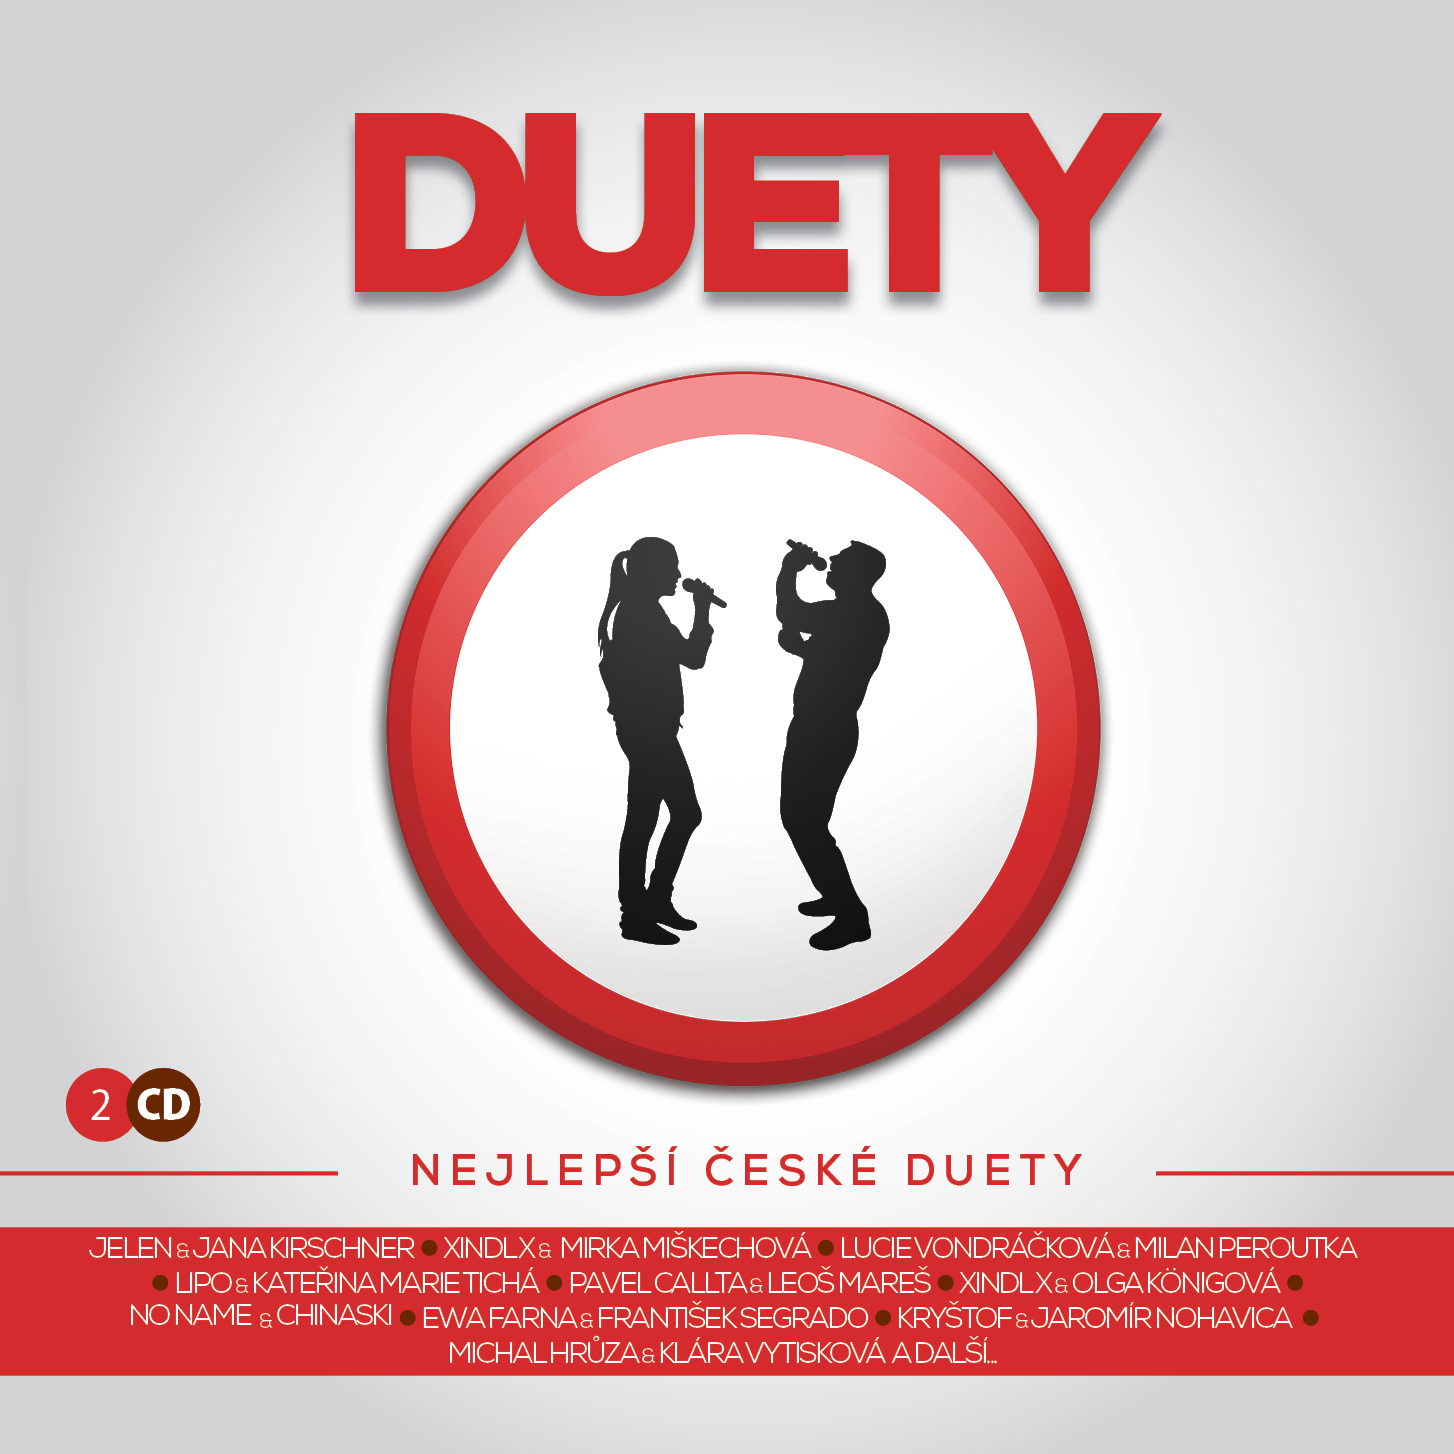 CD Shop - RUZNI/POP NATIONAL DUETY